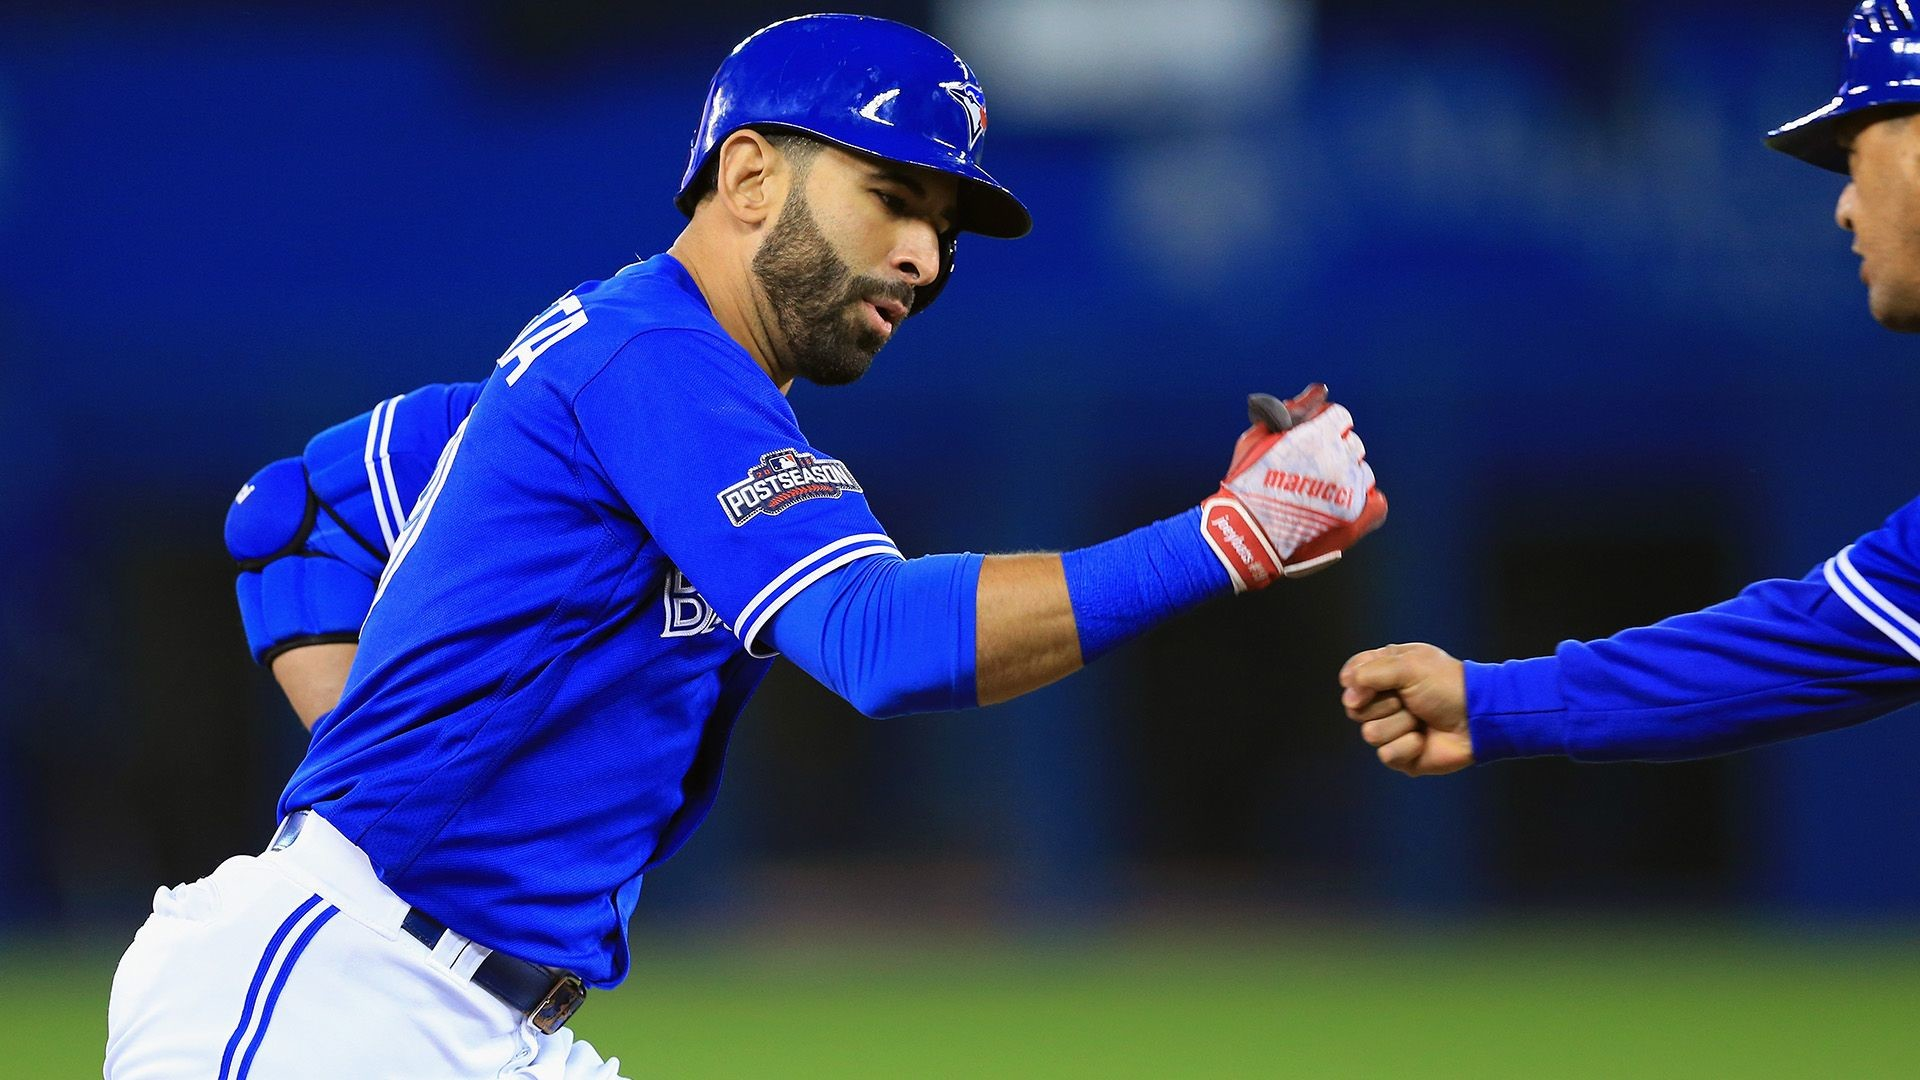 1920x1080 Jose Bautista's new deal with Blue Jays is a far cry from what he wanted